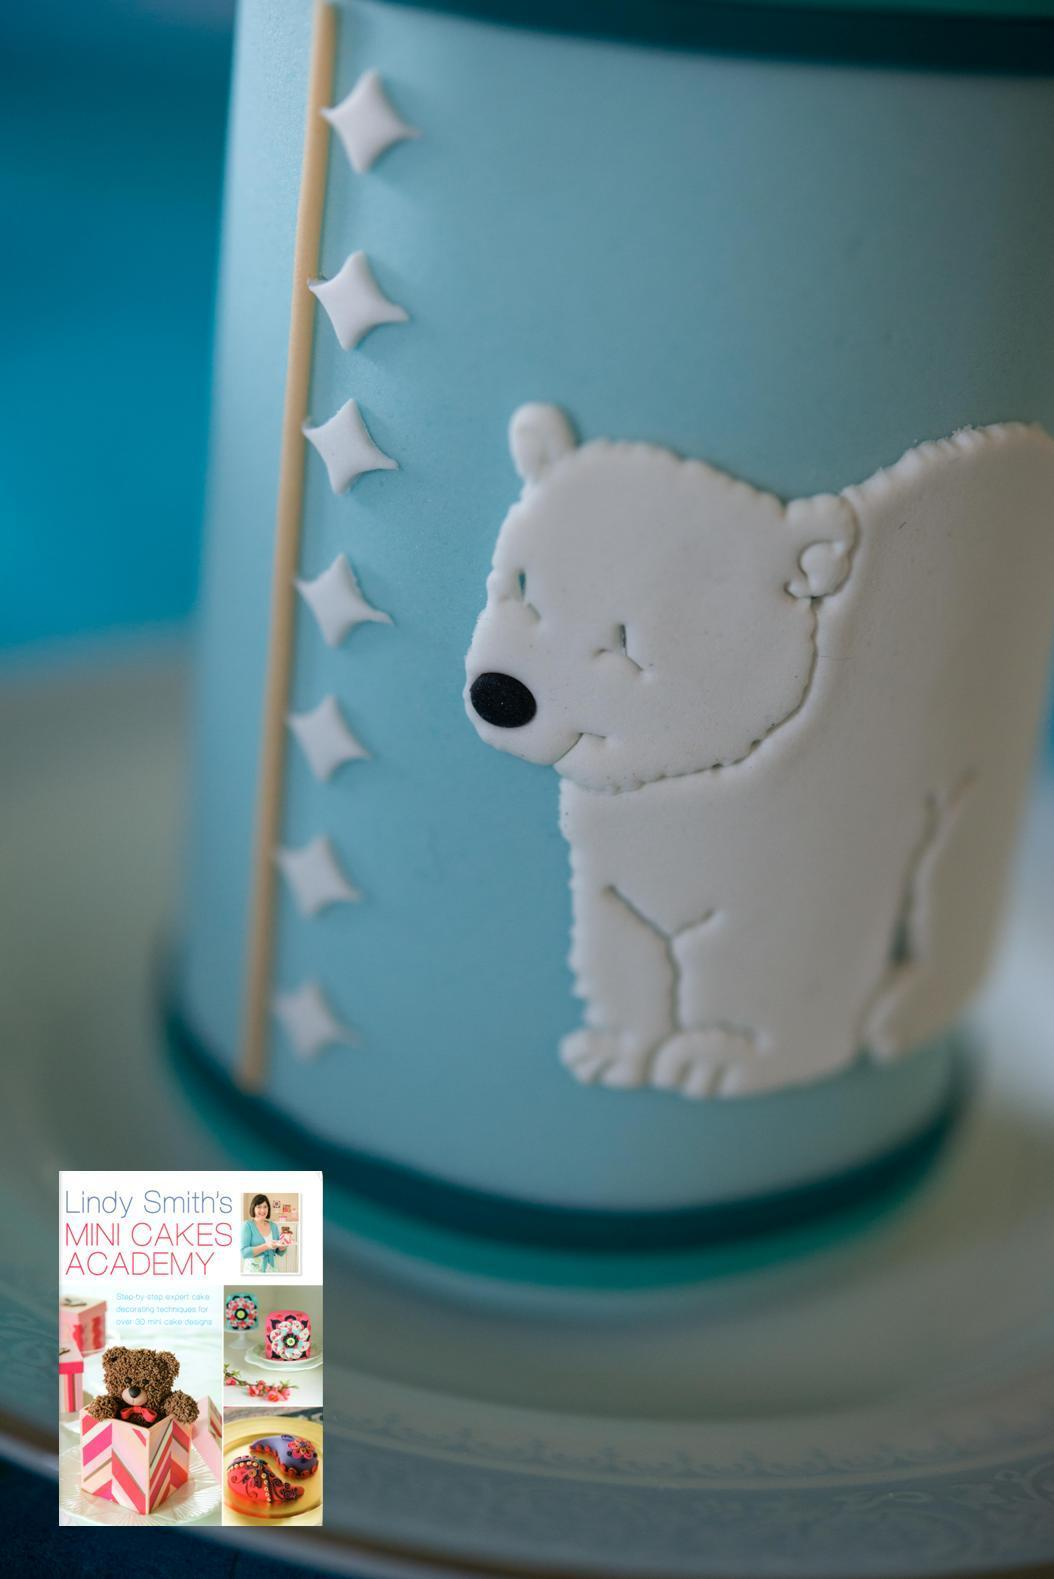 The scallop diamonds work a treat on this baby bottle mini cake - they are the perfect size